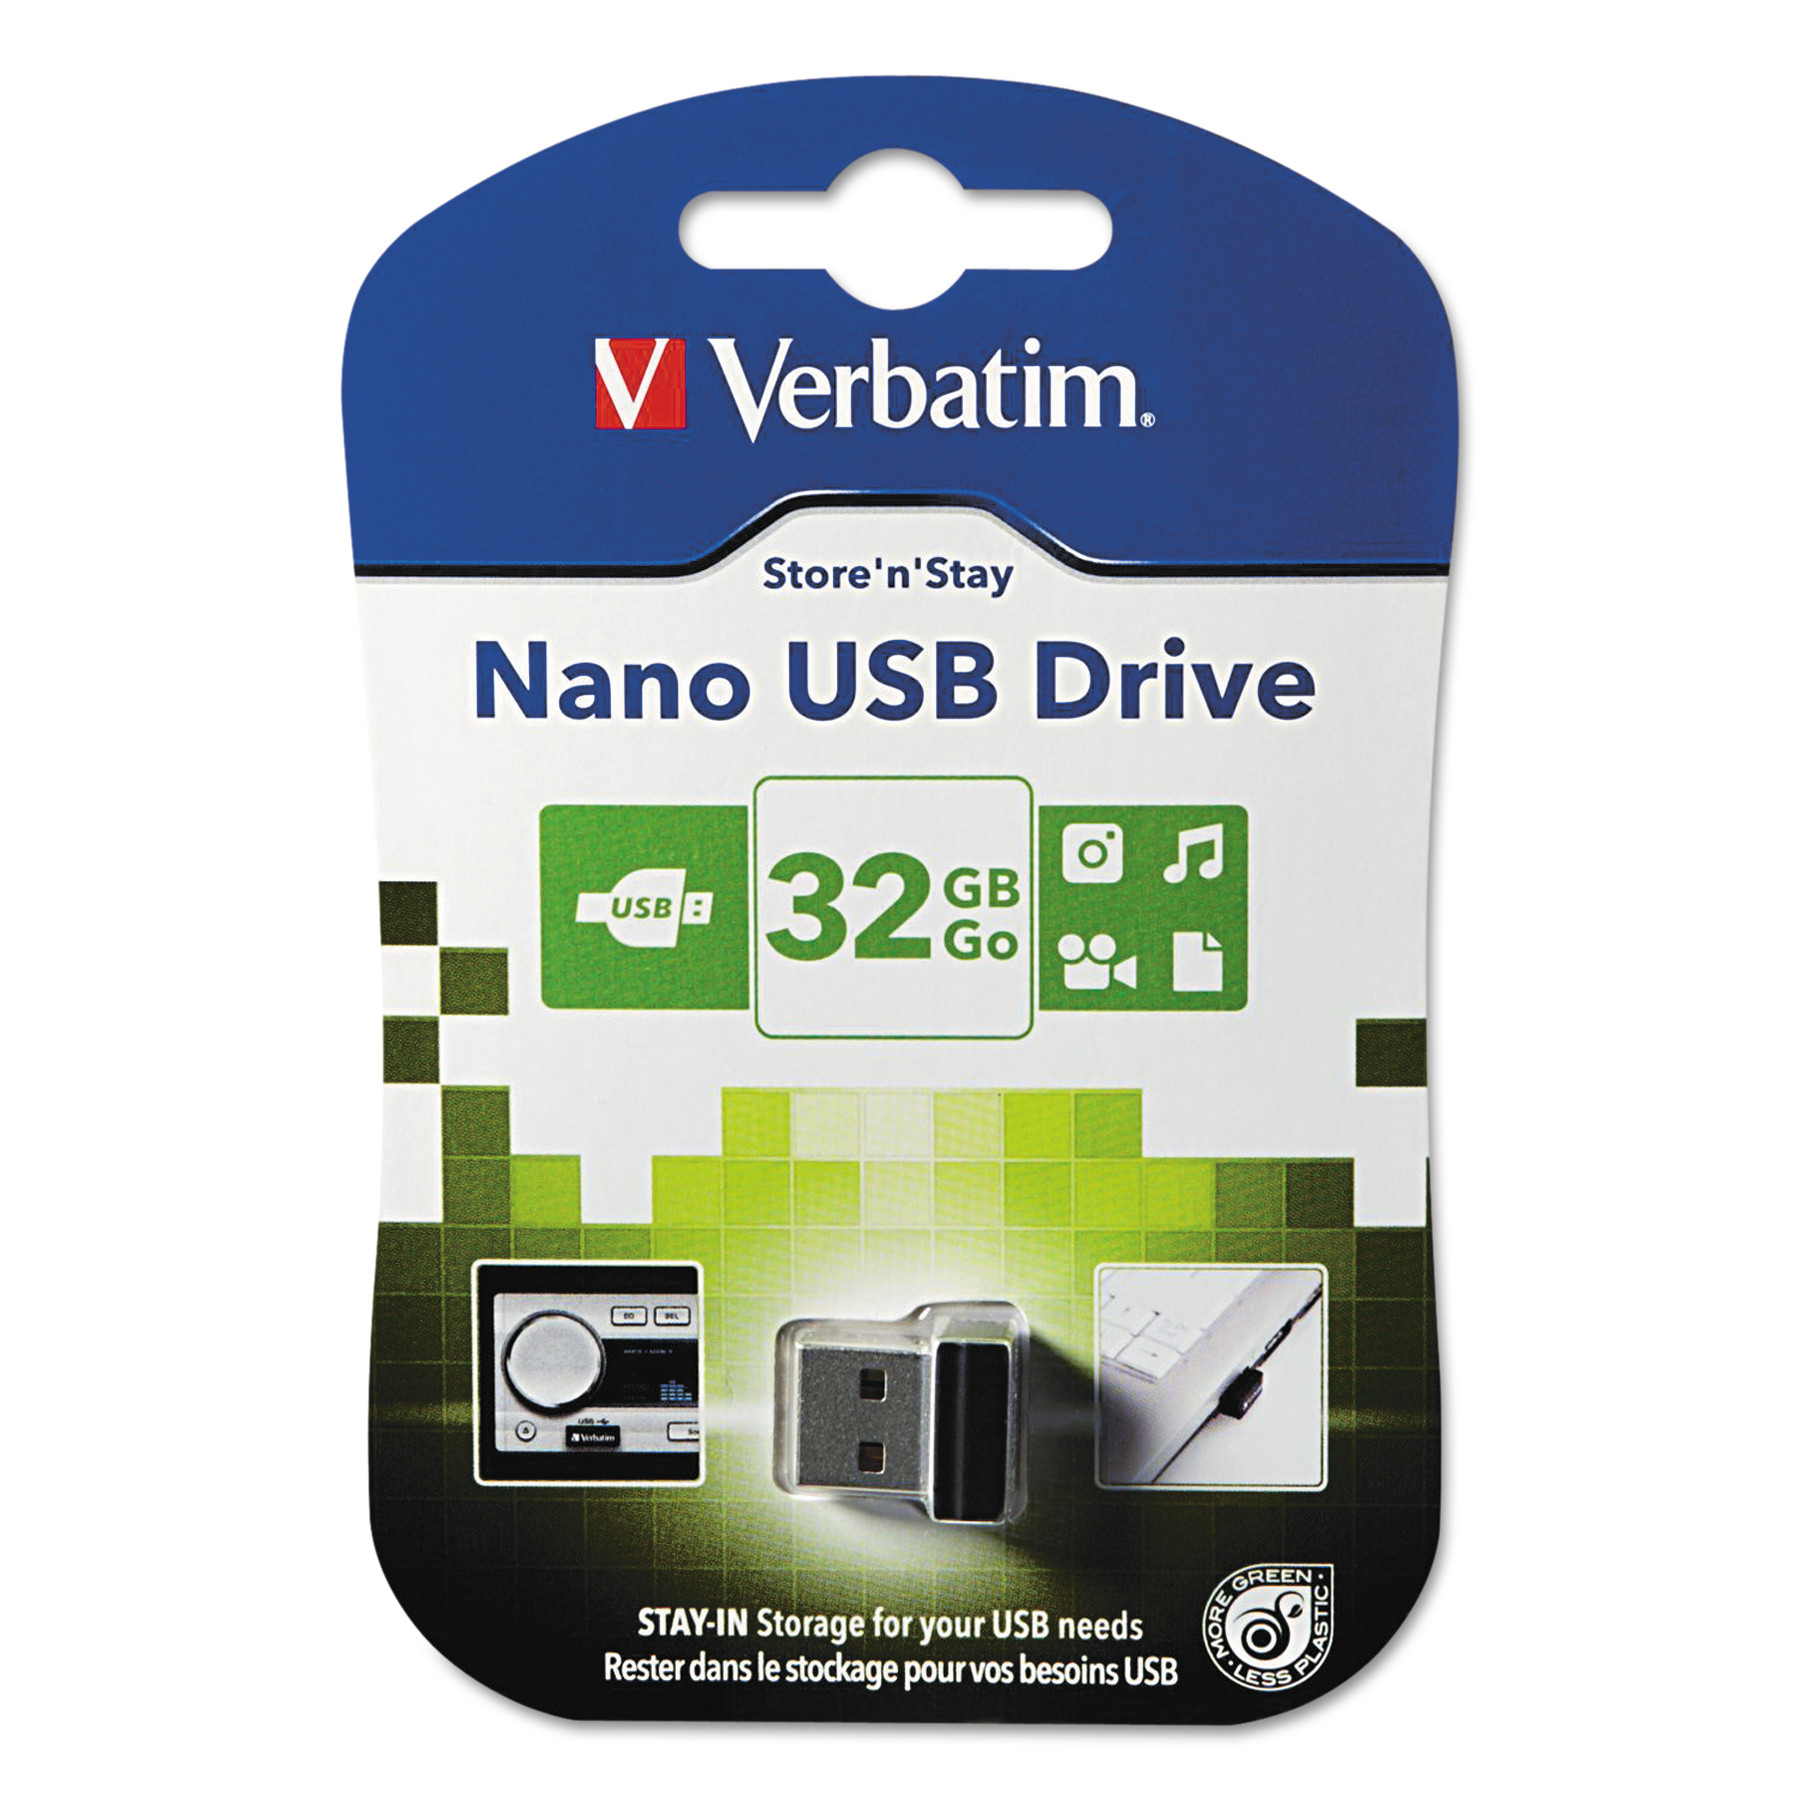 Verbatim Store 'n' Stay Nano USB Flash Drive, 32 GB, Black -VER98130